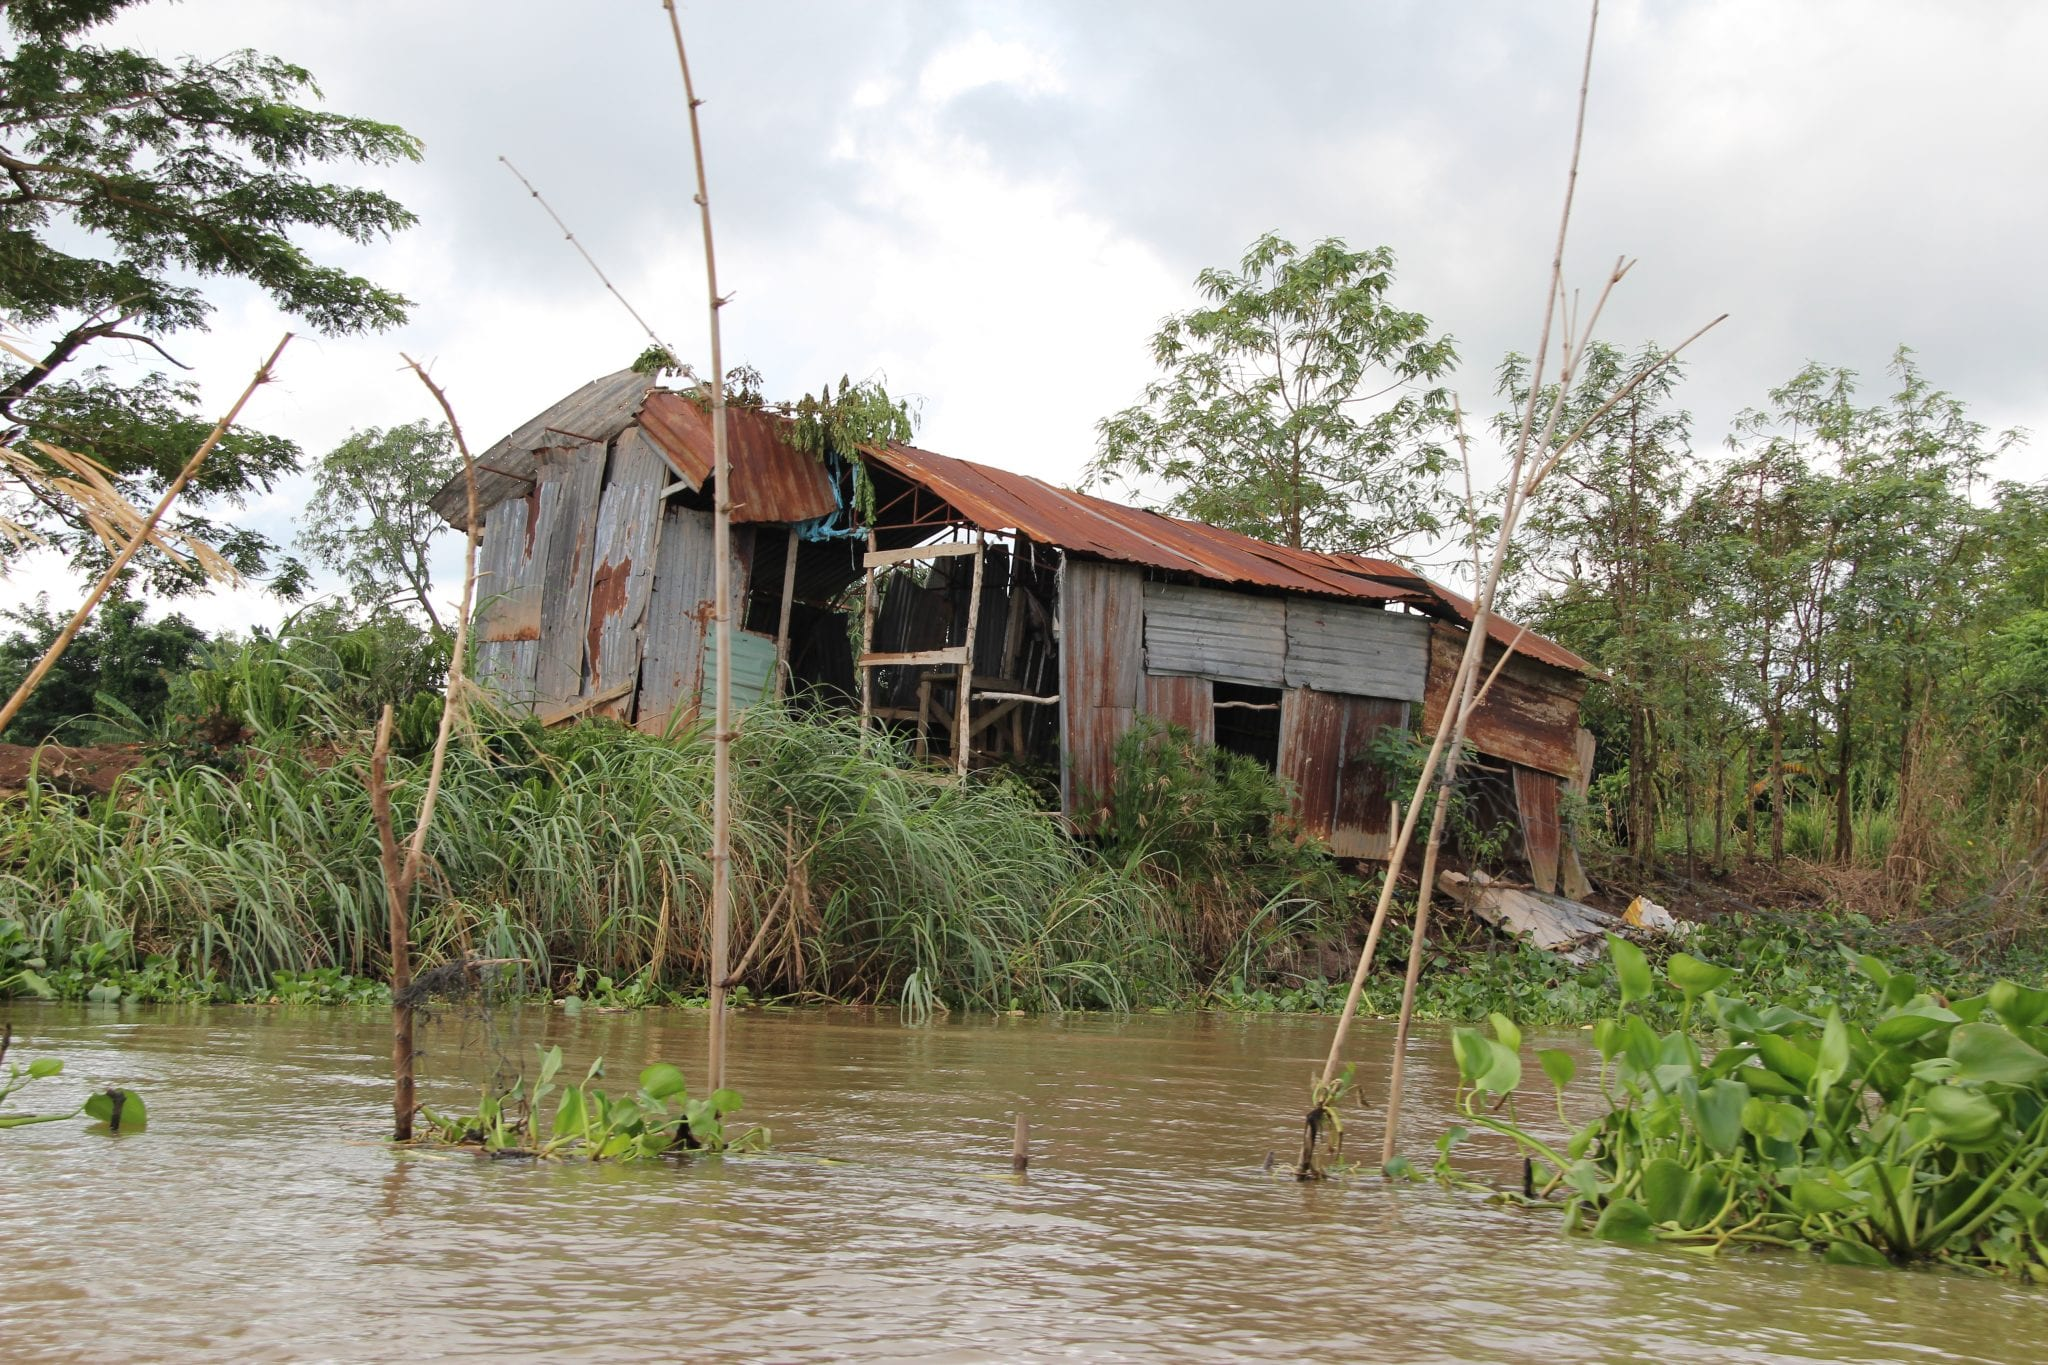 Mekong Delta: Phu Quoc to Ho Chi Minh Overland - Tinytrekkers